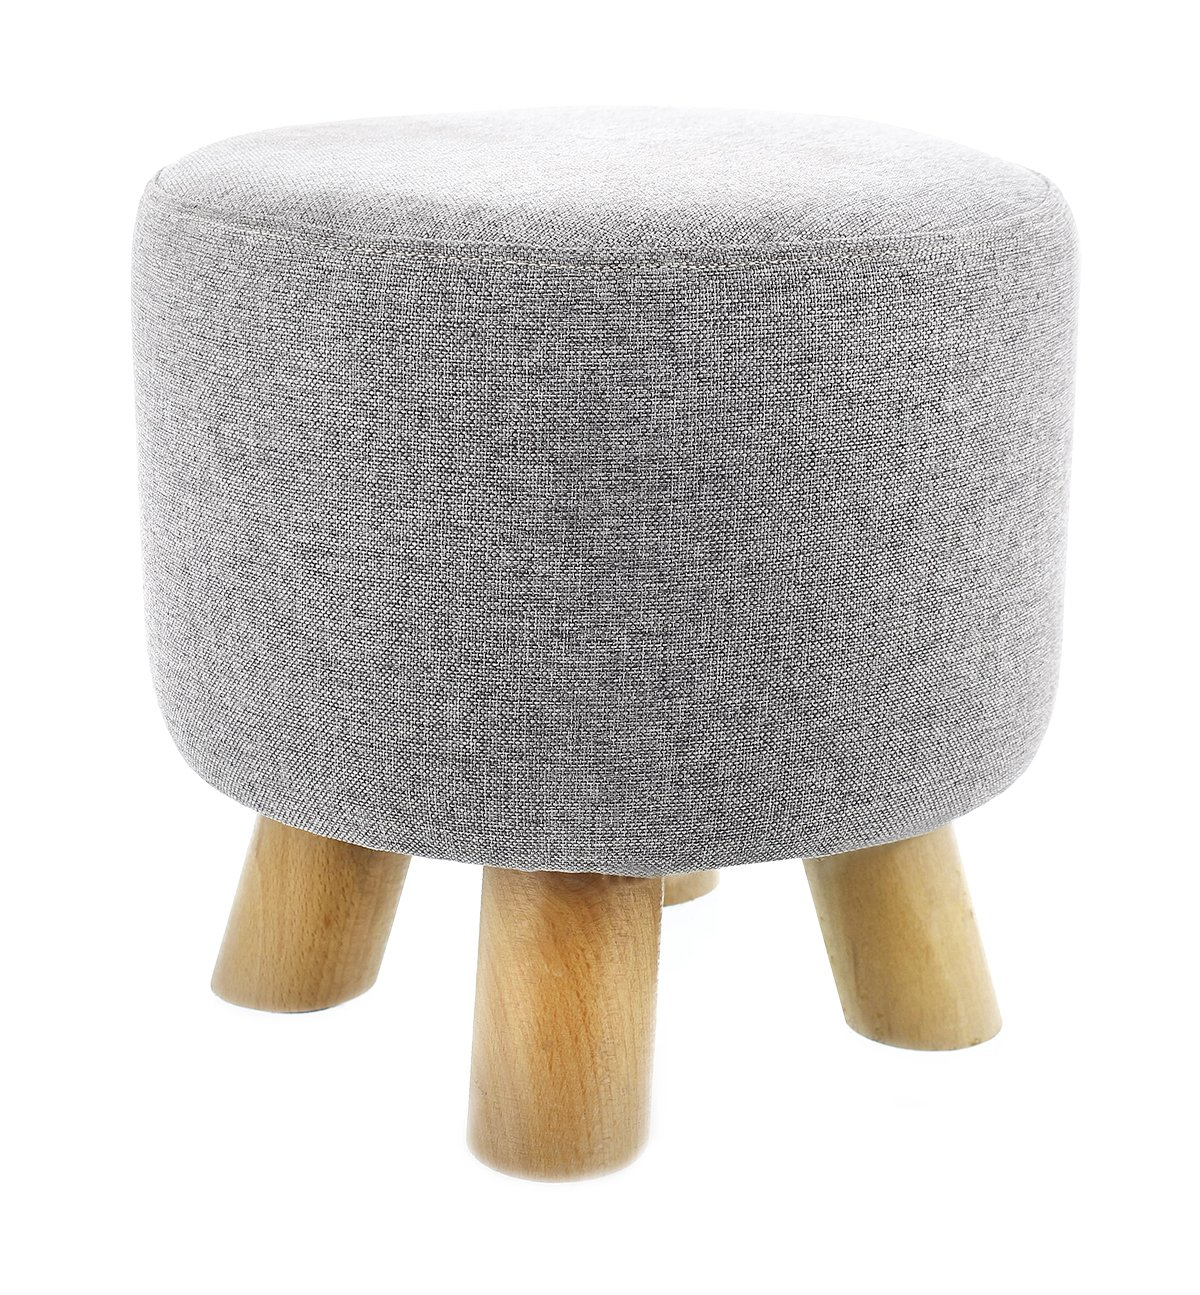 Ottoman Footstool - Round Pouf Ottoman Foot Rest Removable Linen Fabric Cover, Grey